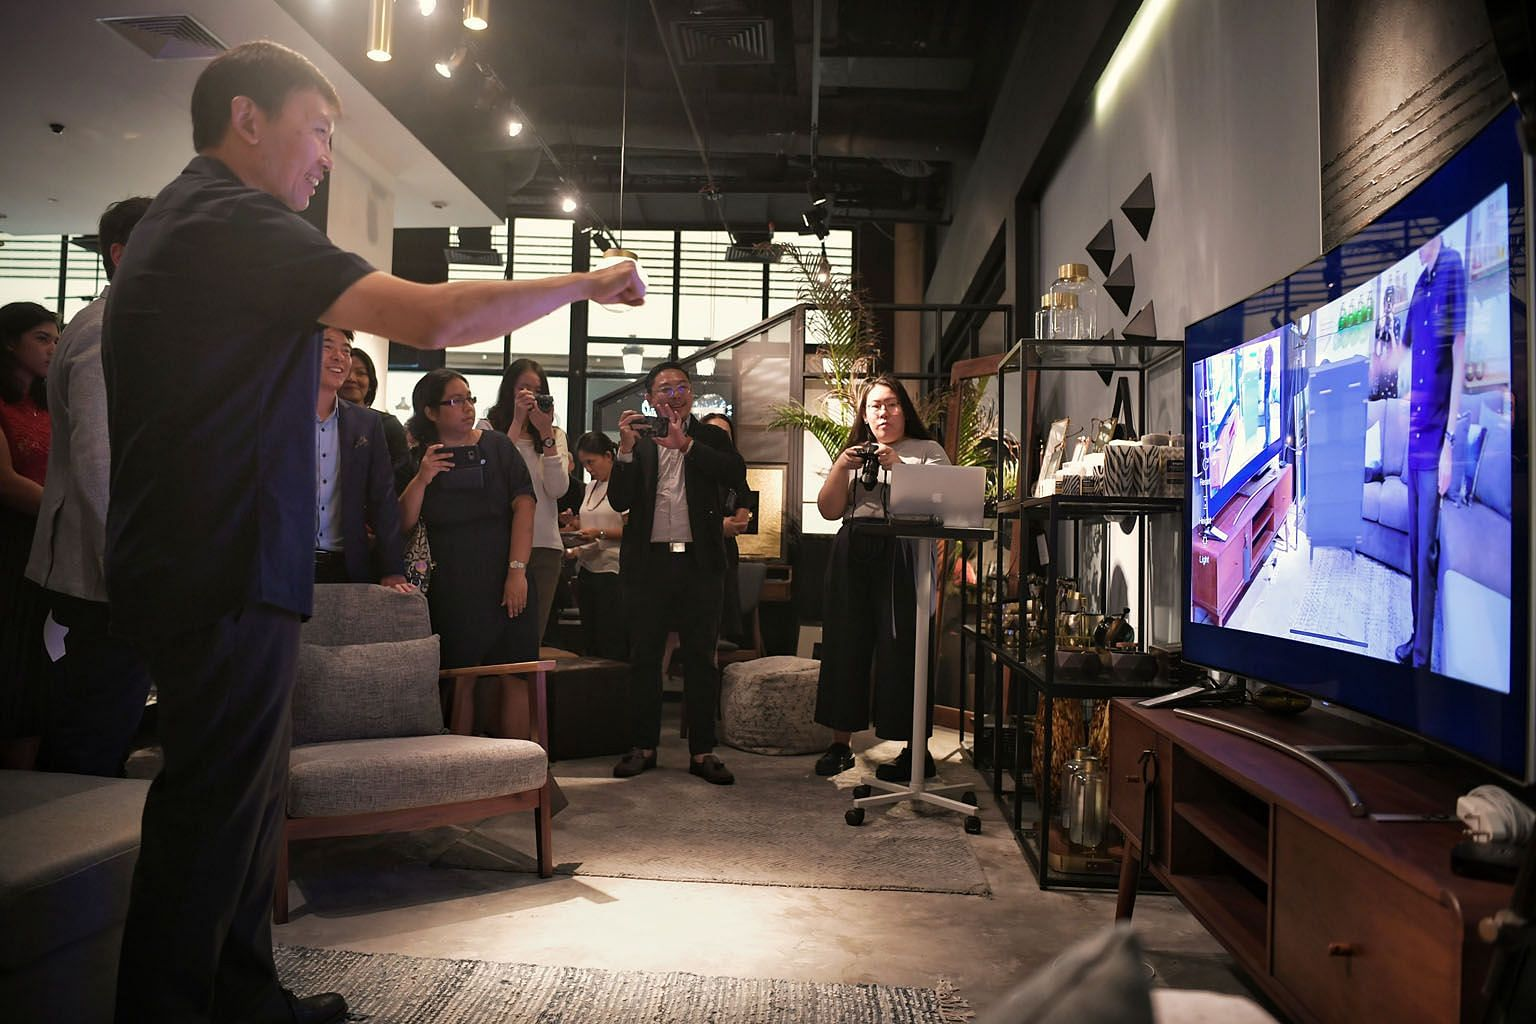 Senior Minister of State for Trade and Industry Chee Hong Tat trying out augmented reality technology on his visit to furniture store Commune at Millenia Walk yesterday.